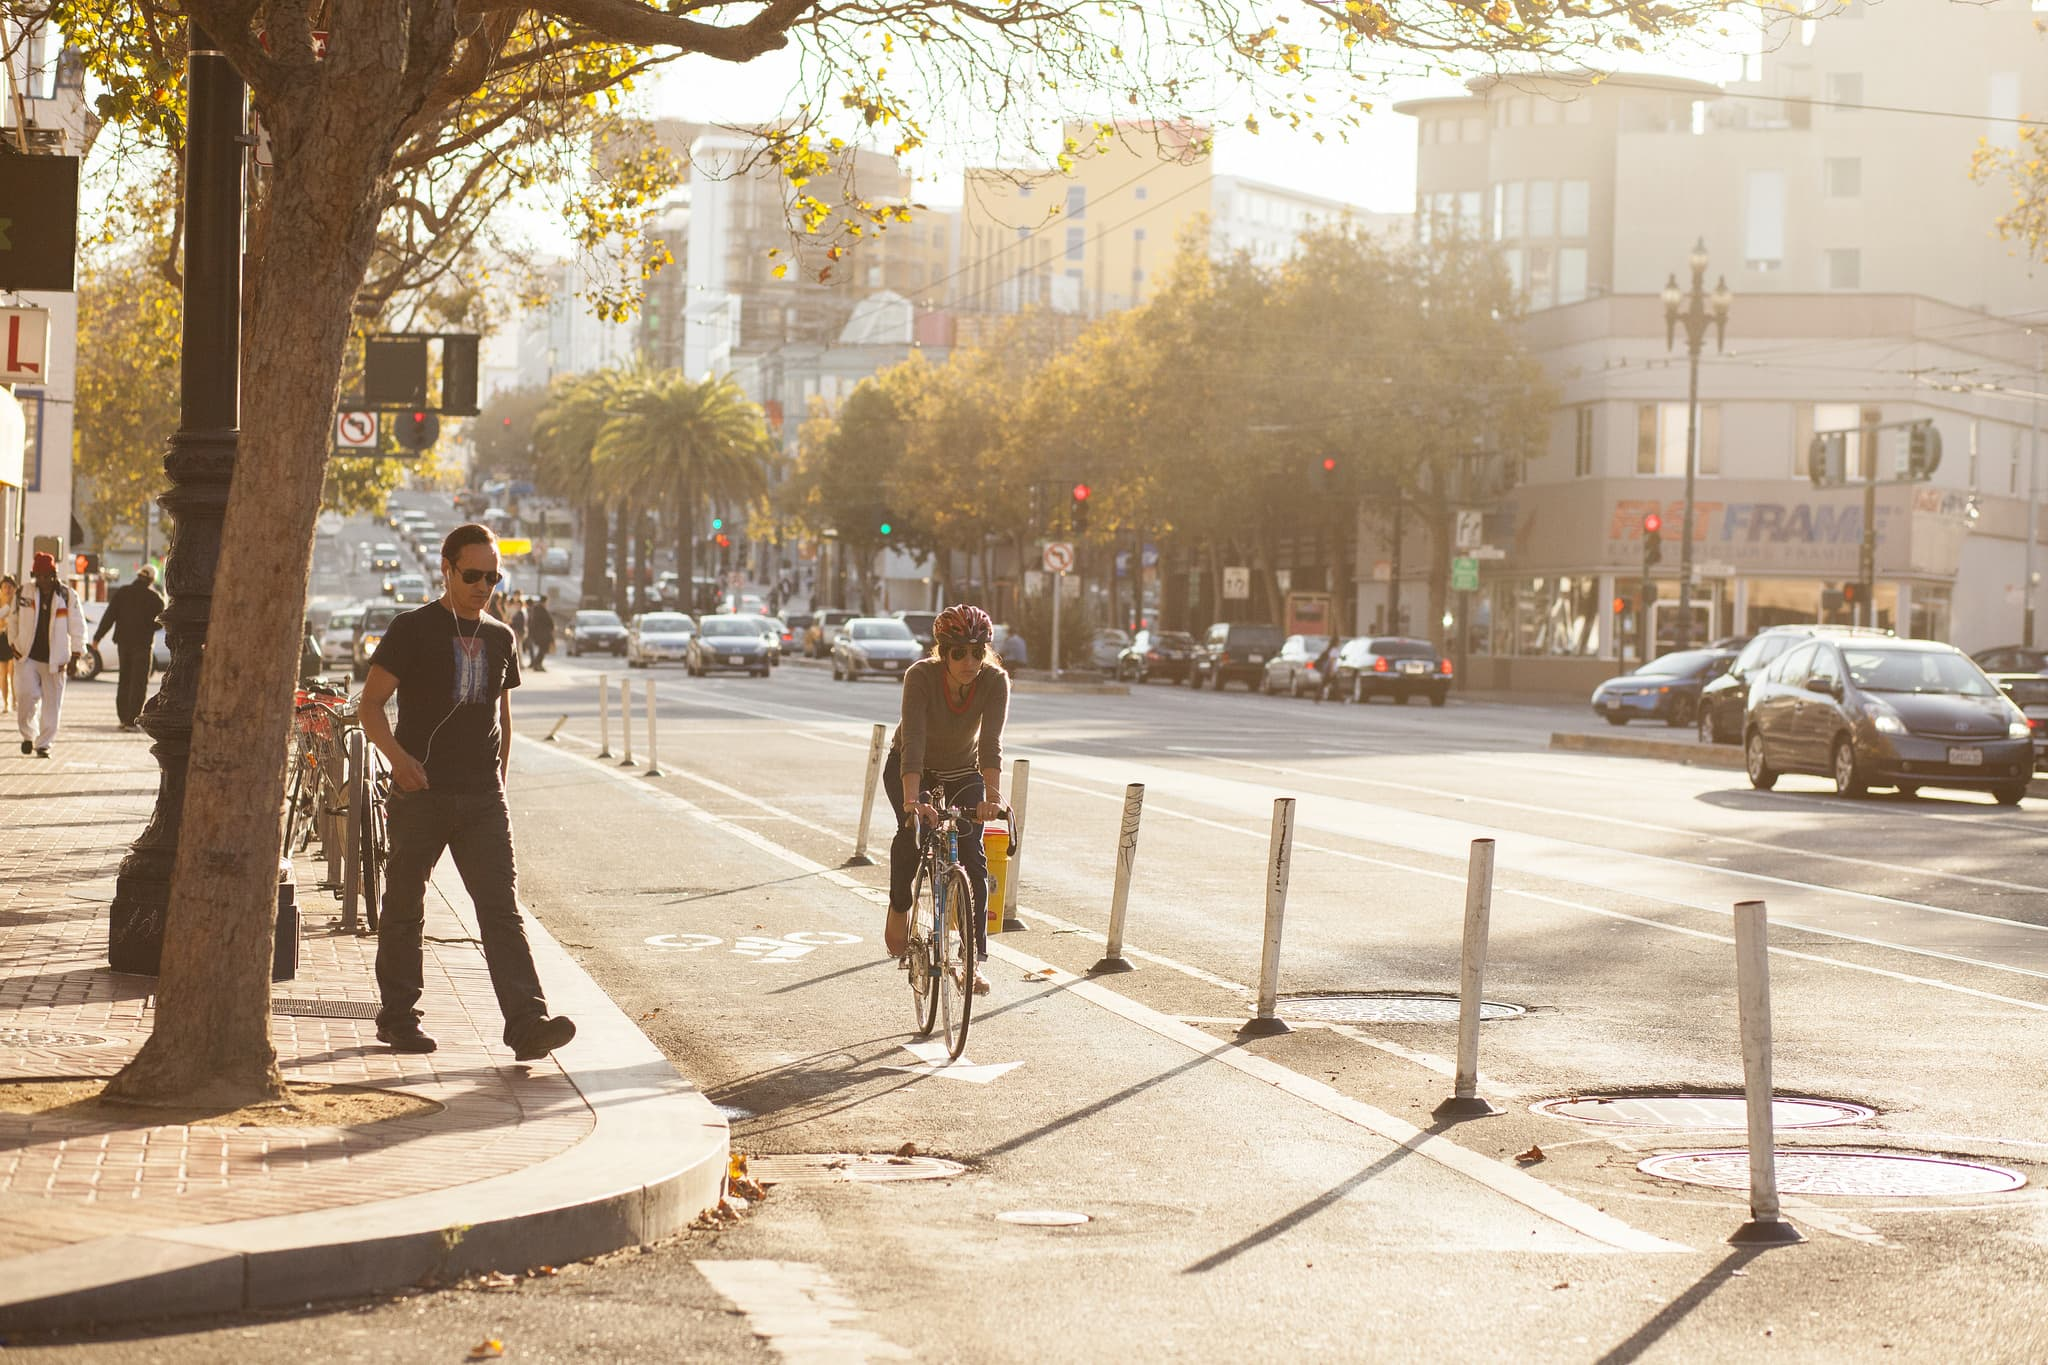 Protected bike lanes create an environment where pedestrians feel safer walking and cars still have easy access to shops along the street. (Source: Green Lane Project)